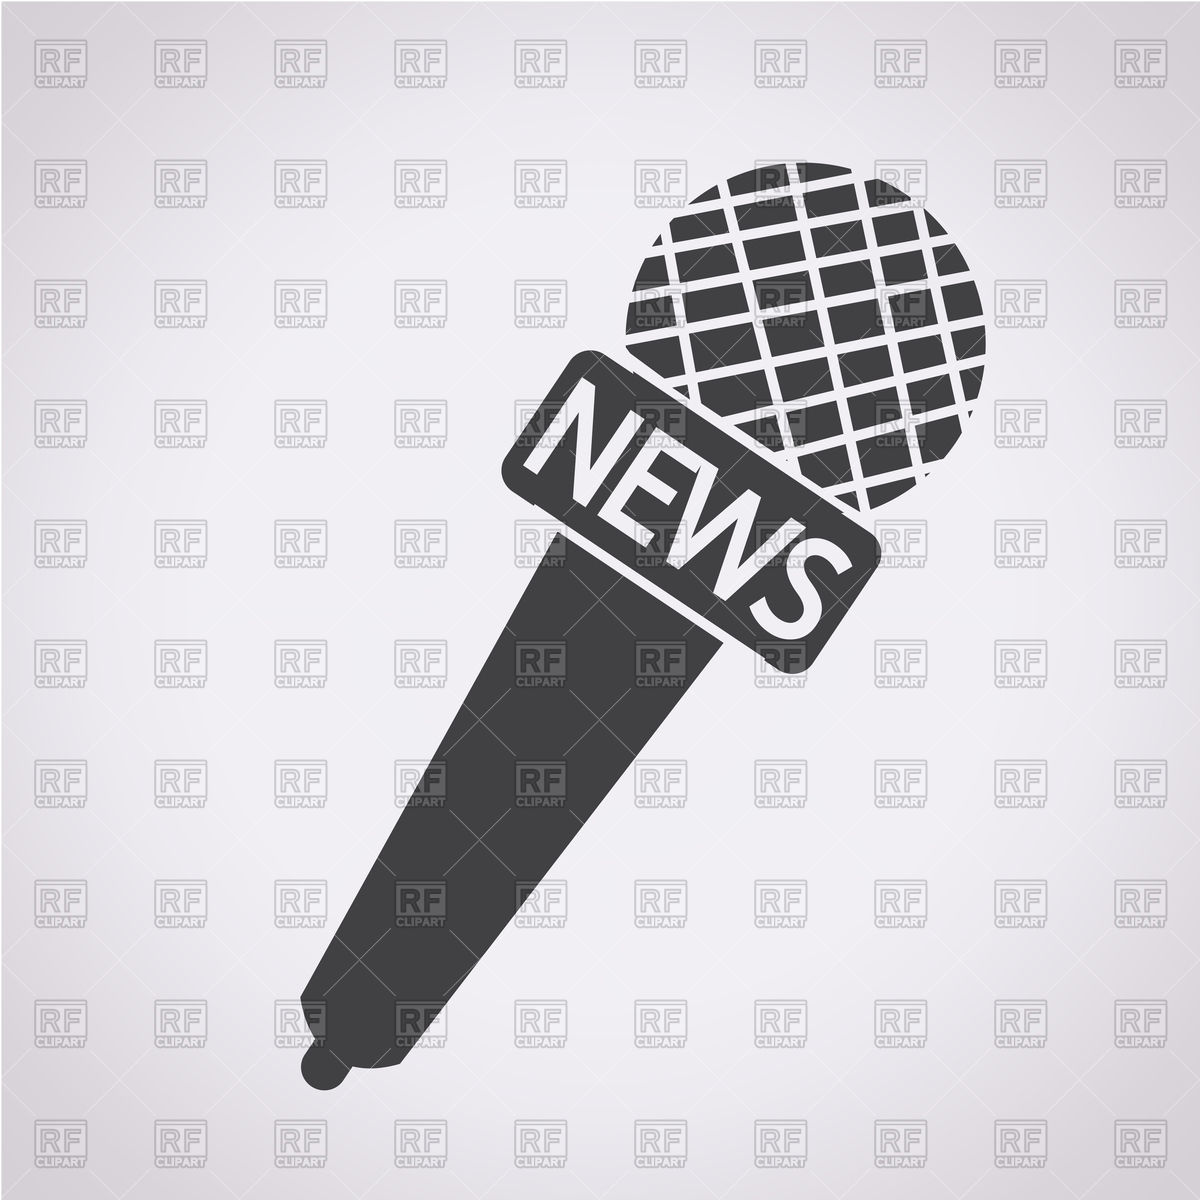 News microphone icon Stock Vector Image.